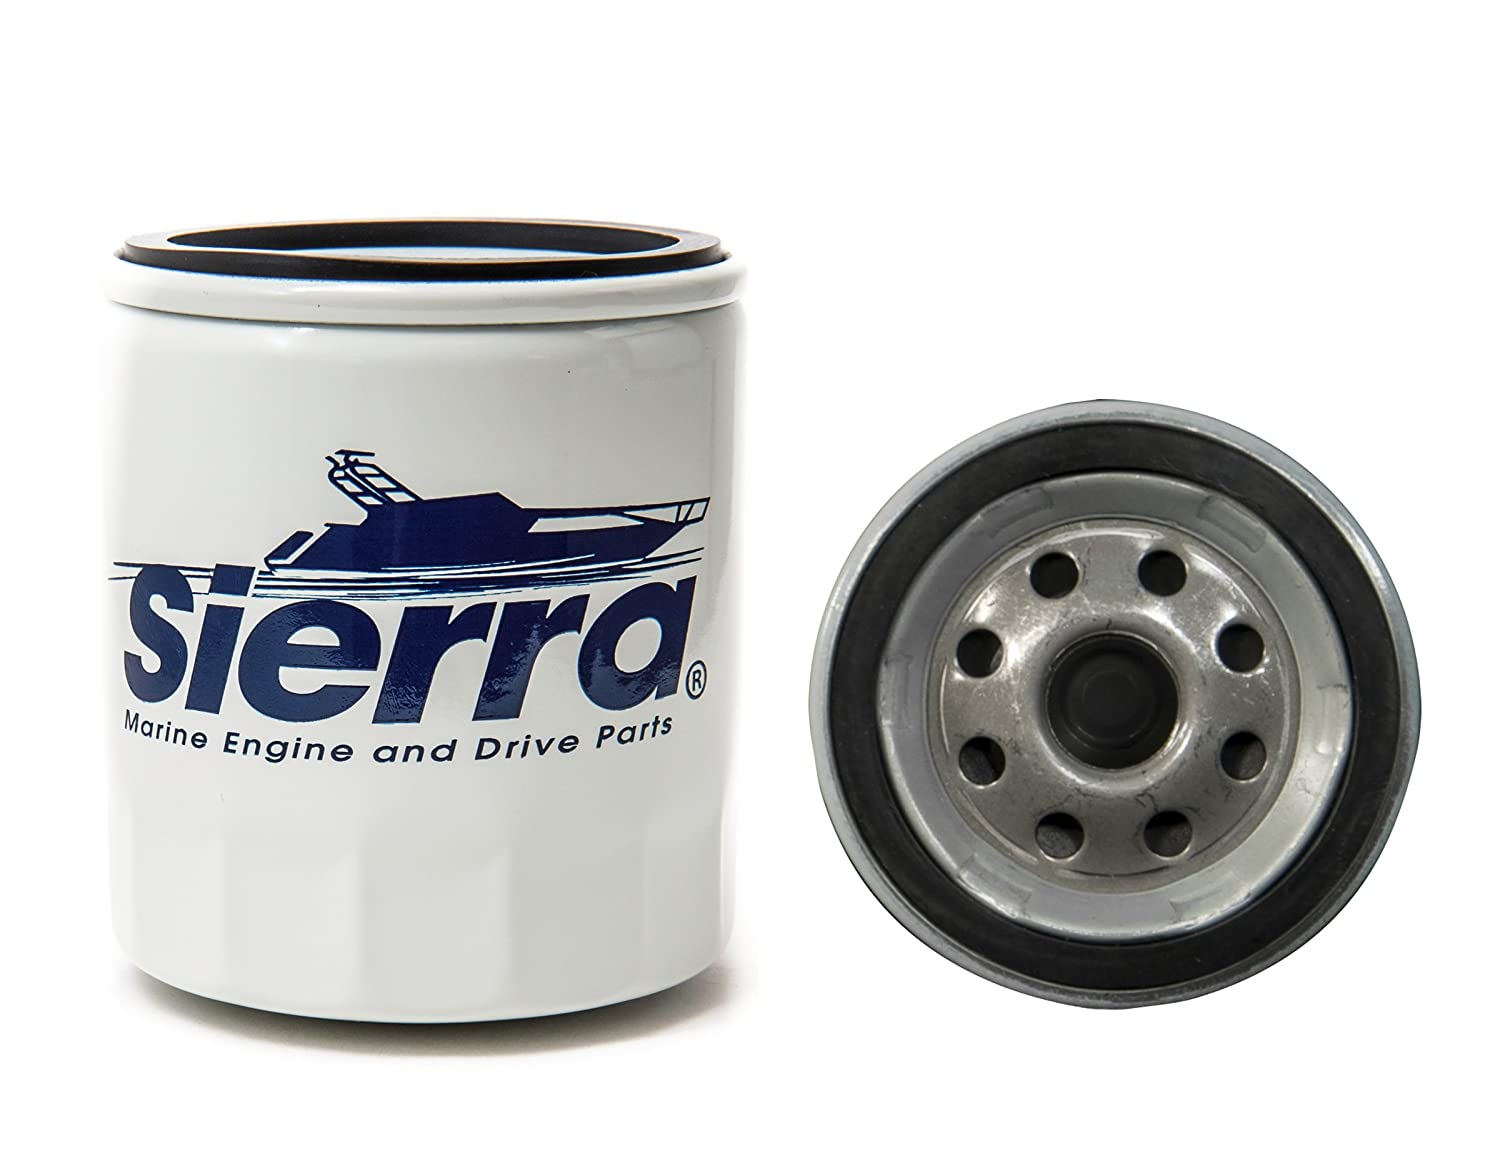 SIERRA OIL FILTER  PART #18-7879-1